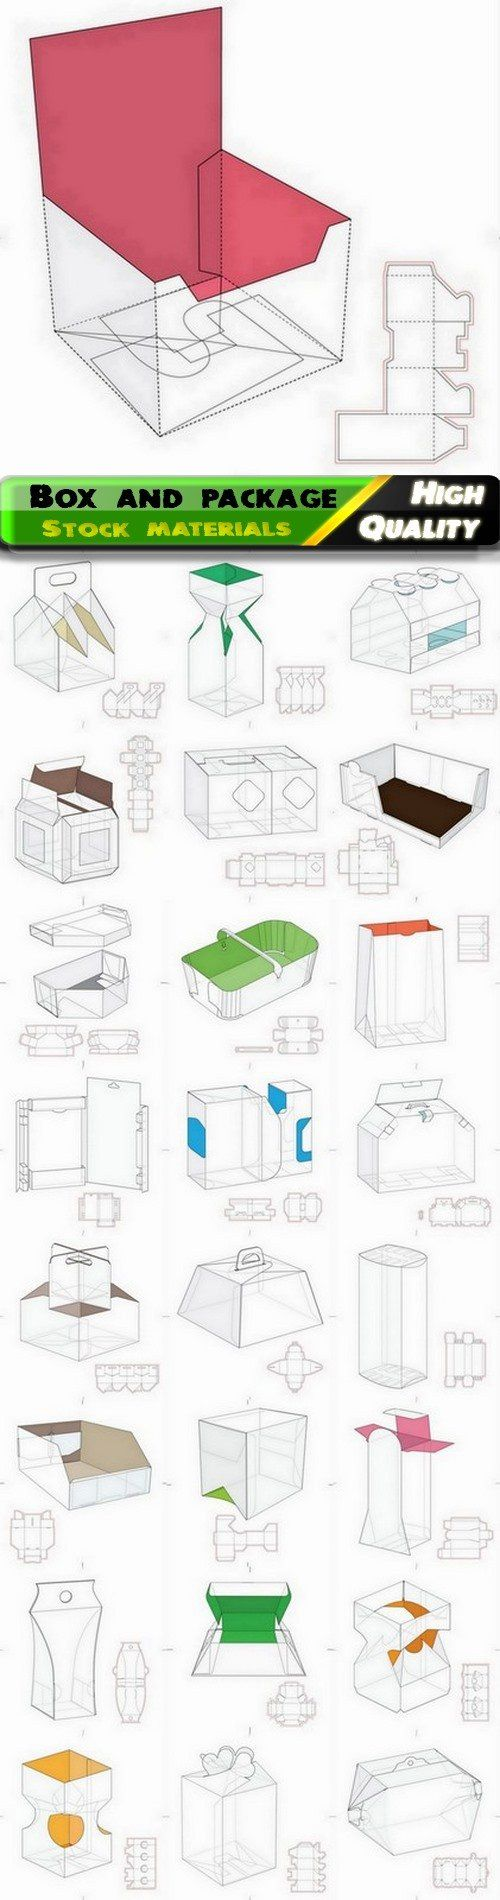 Layout of box and package with drawing line for cutting - 25 Eps